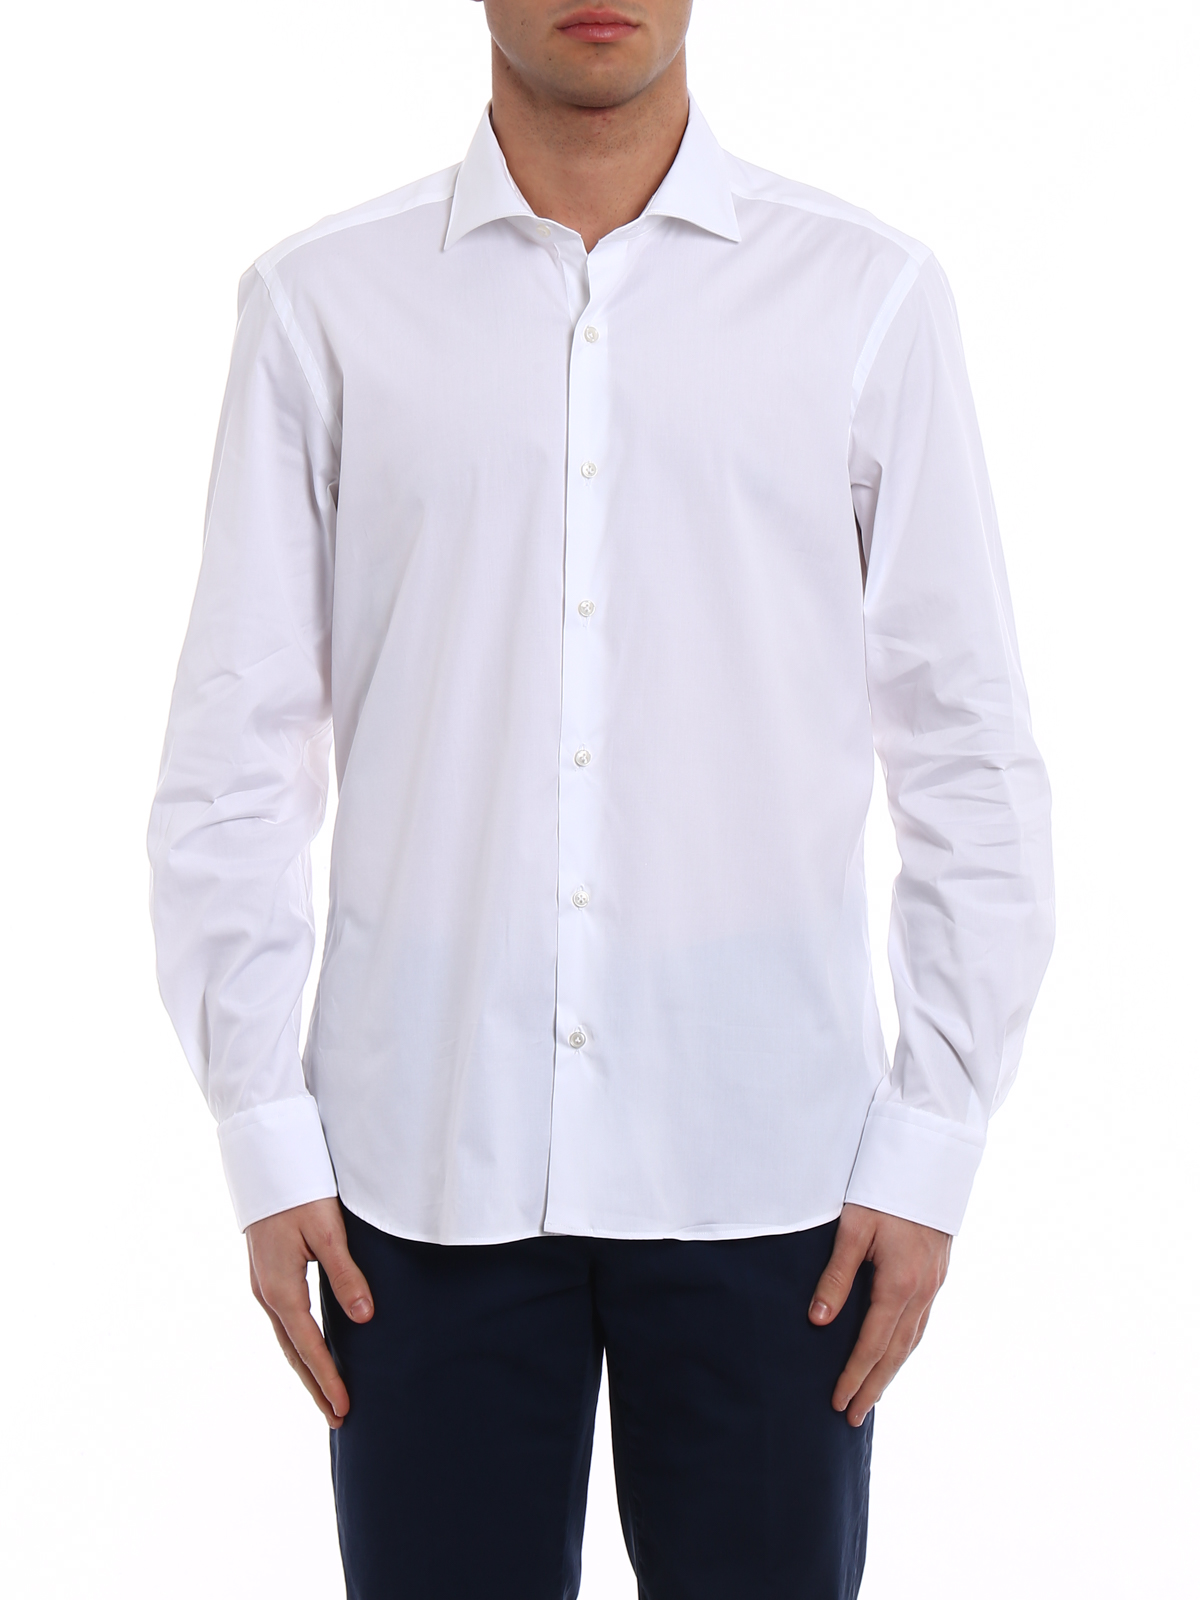 classic shirt - White Fay Discount Original New Styles For Sale Low Price Sale Online Cheap Sale Find Great Free Shipping Lowest Price PUHC2Fle